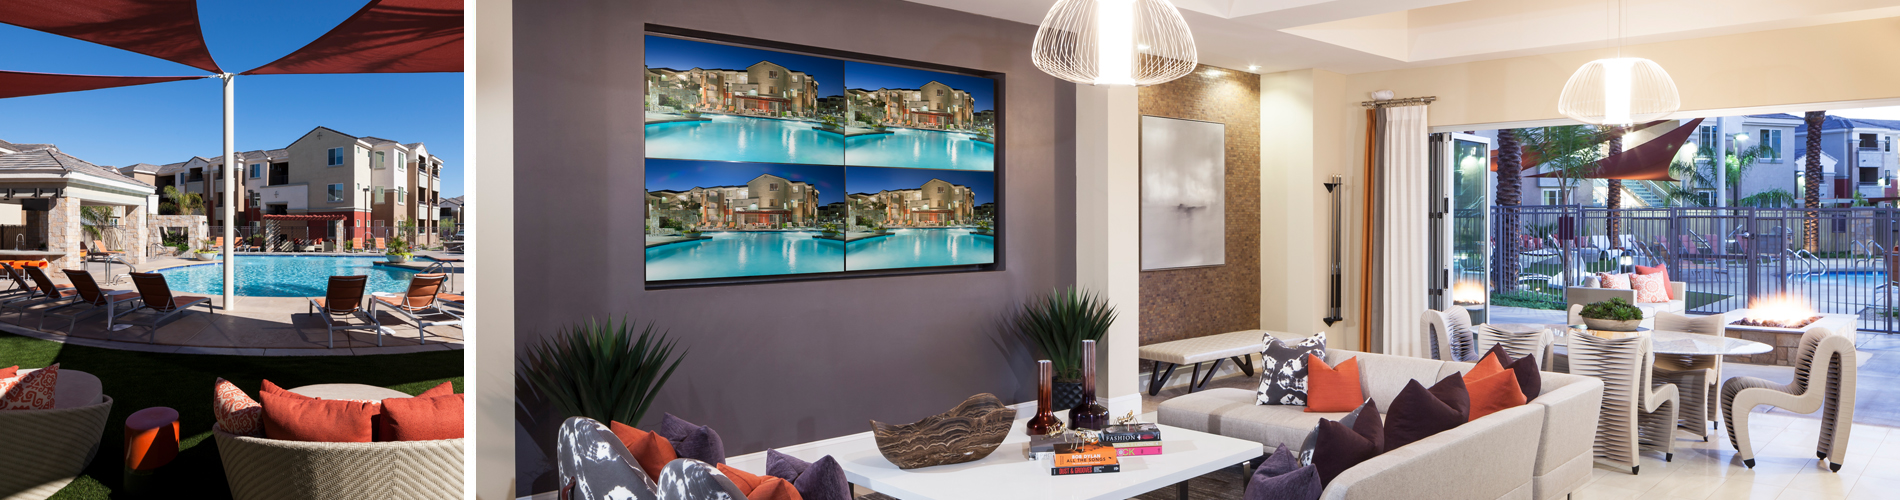 Trinsic Residential Group Aura On Broadway Luxury Tempe